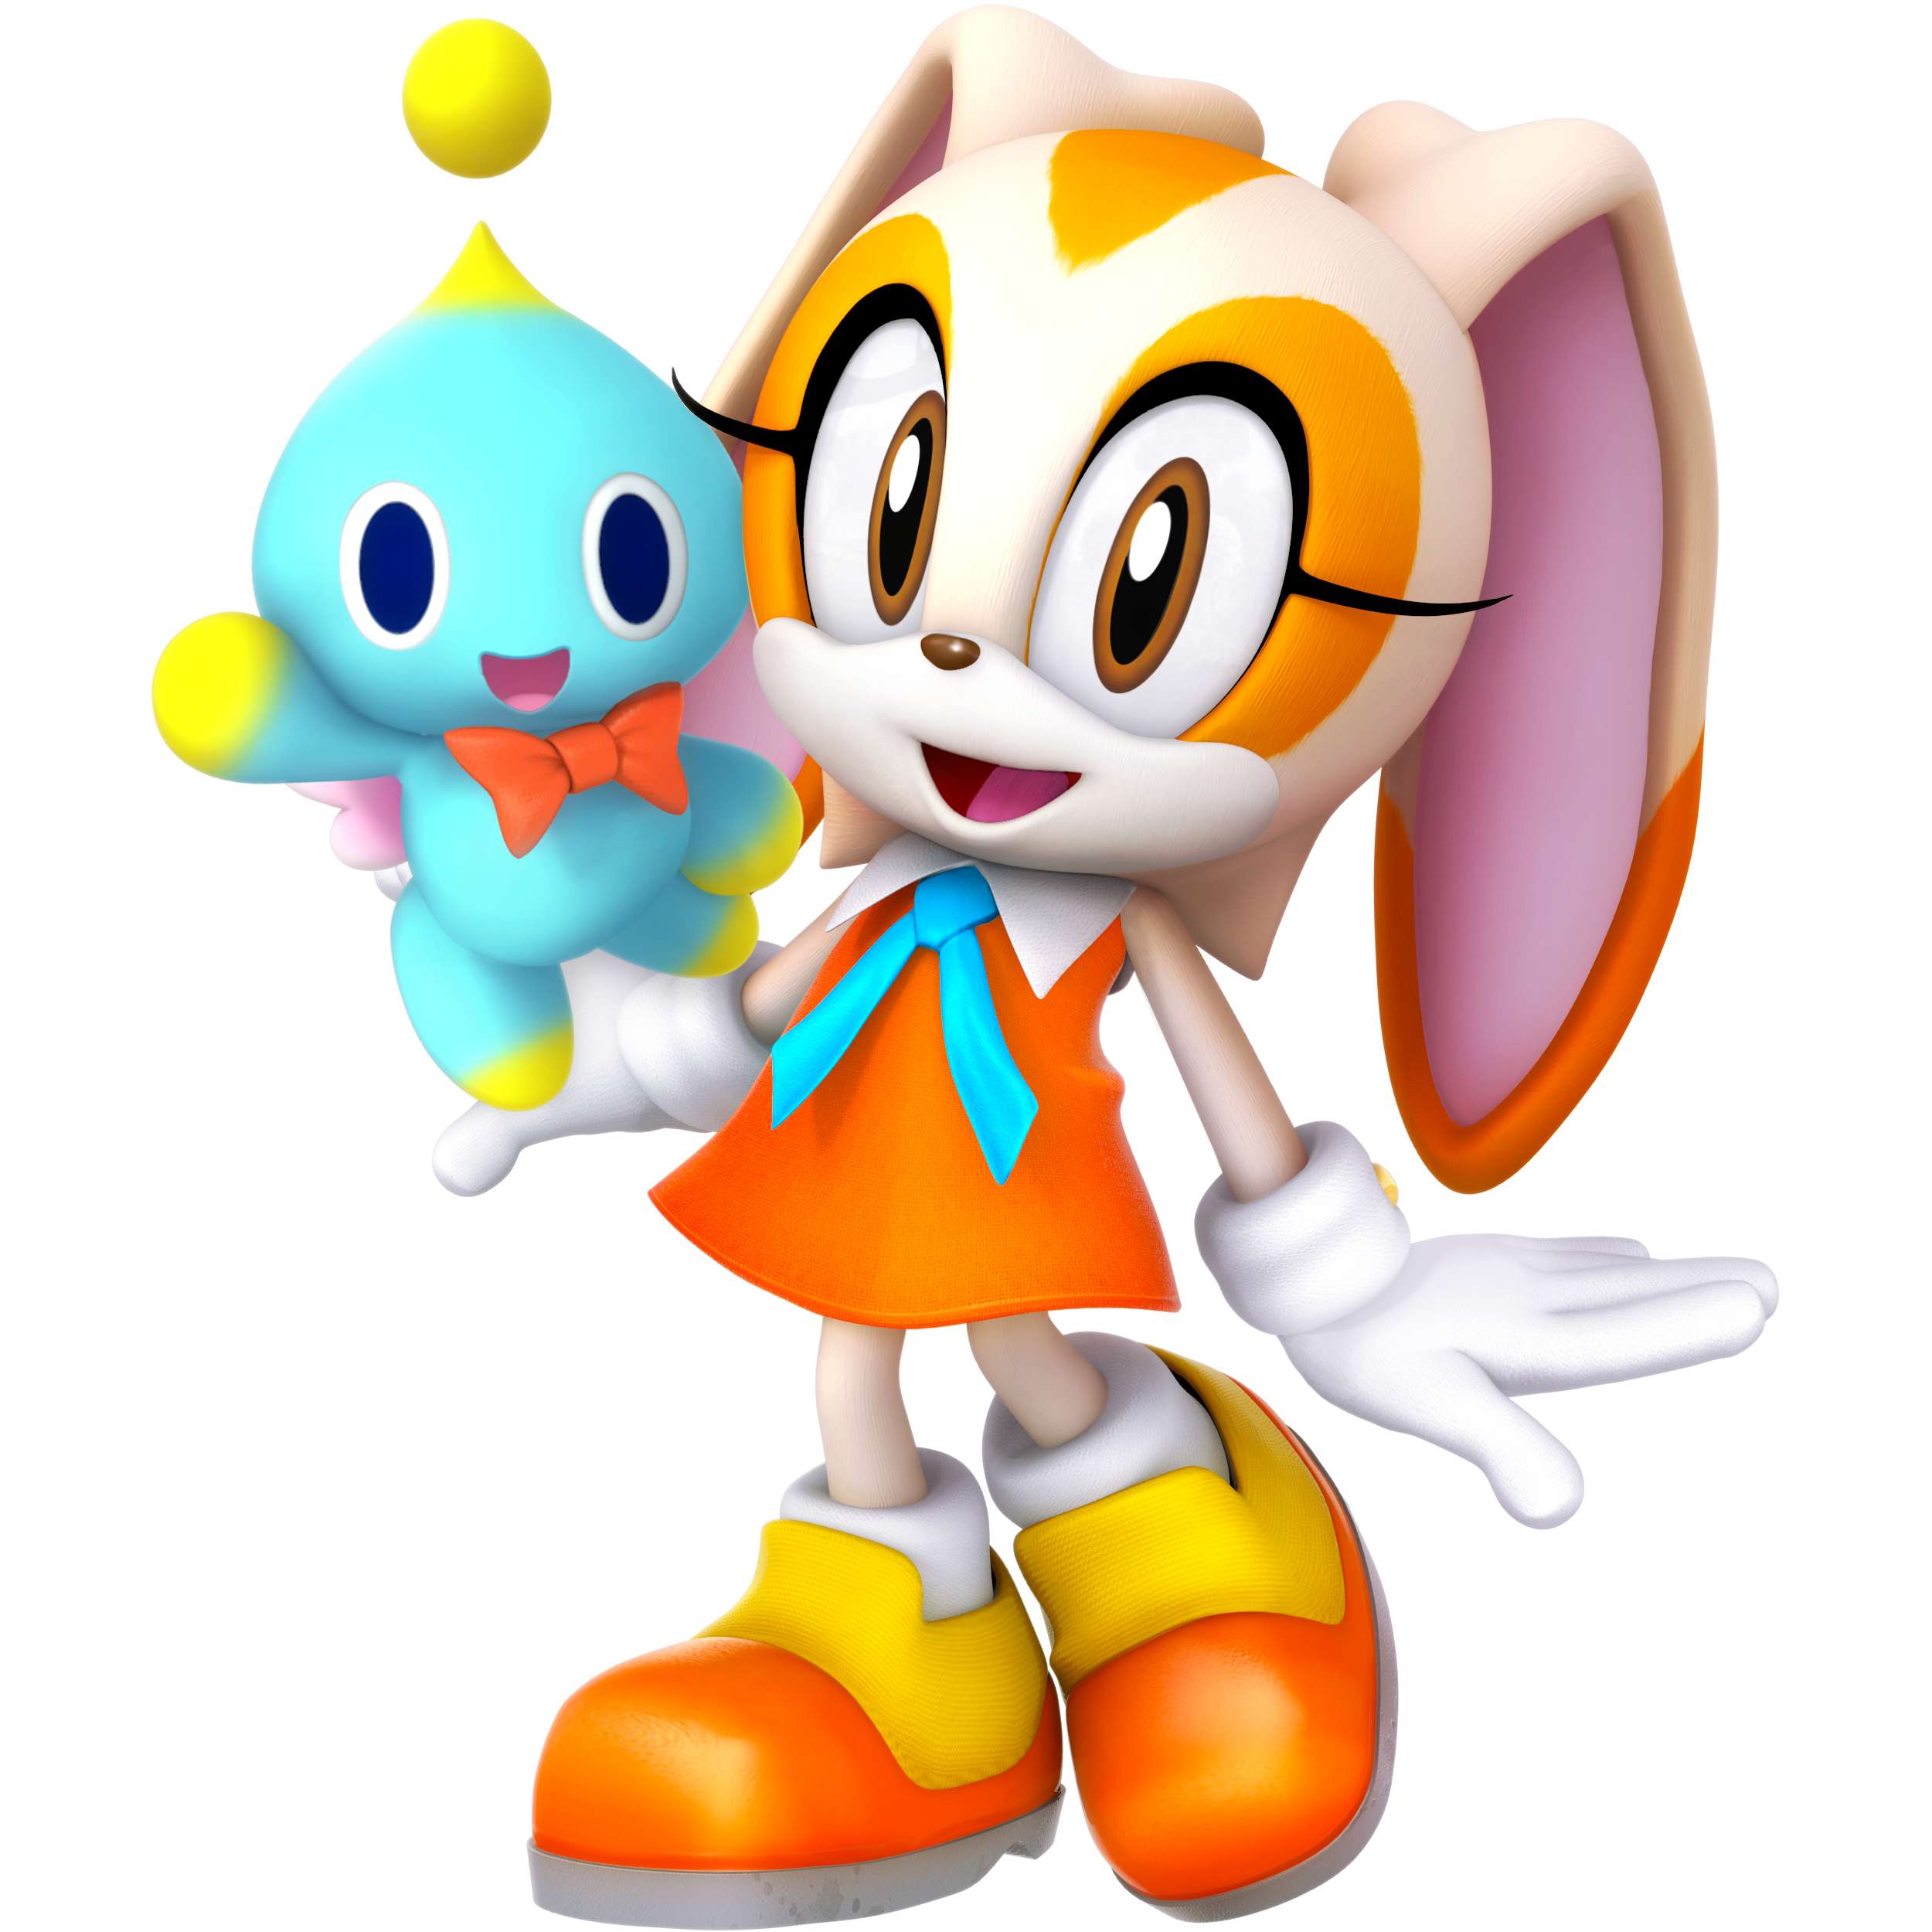 Cream and Cheese 2020 render